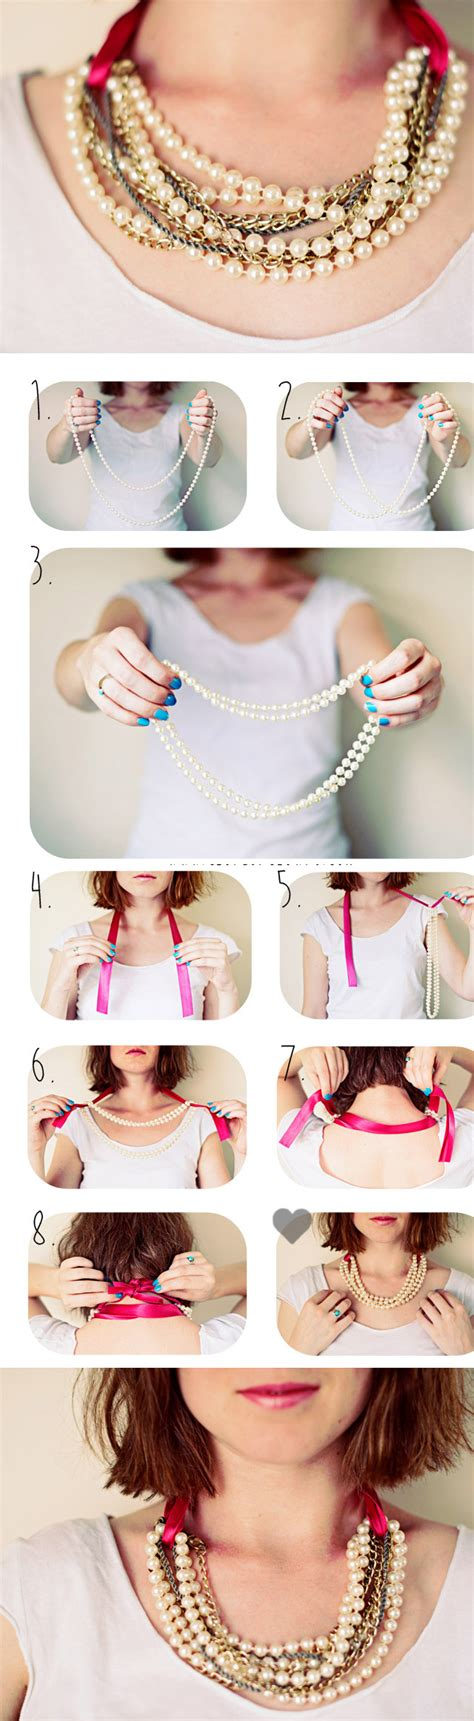 fashion crafts for hairstyle haircut diy winter crafts